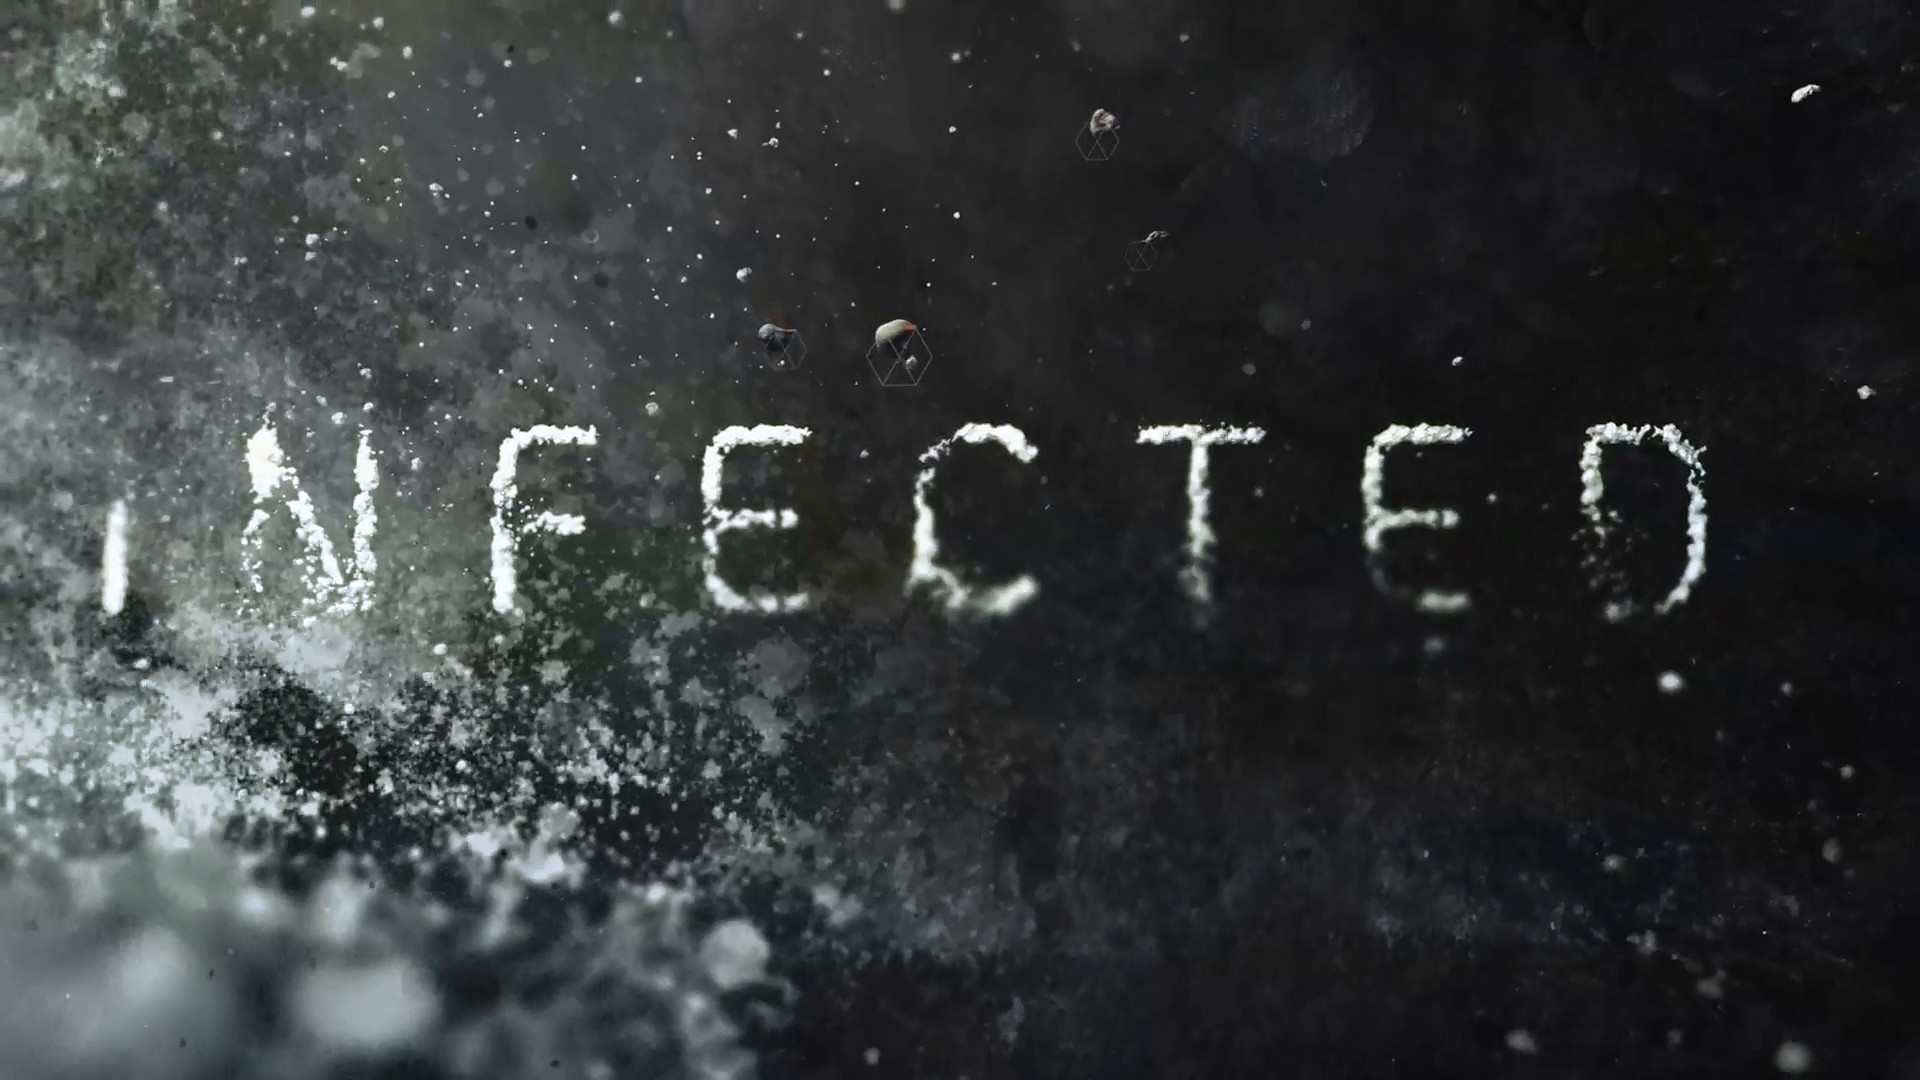 … Tom Clancy's The Division – Infected by Legan666